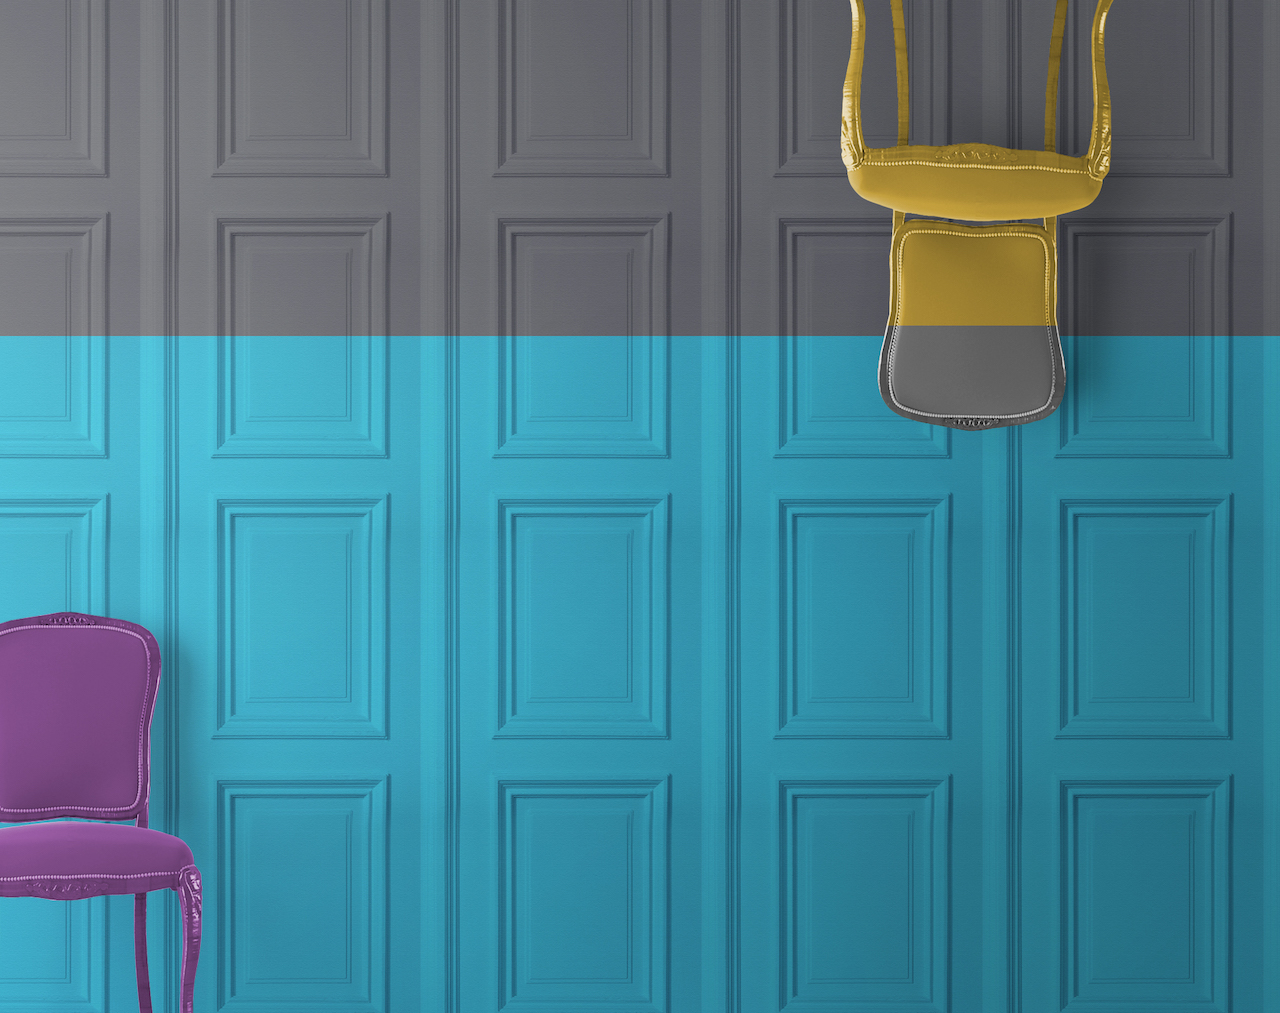 grey and turquoise panel wallpaper